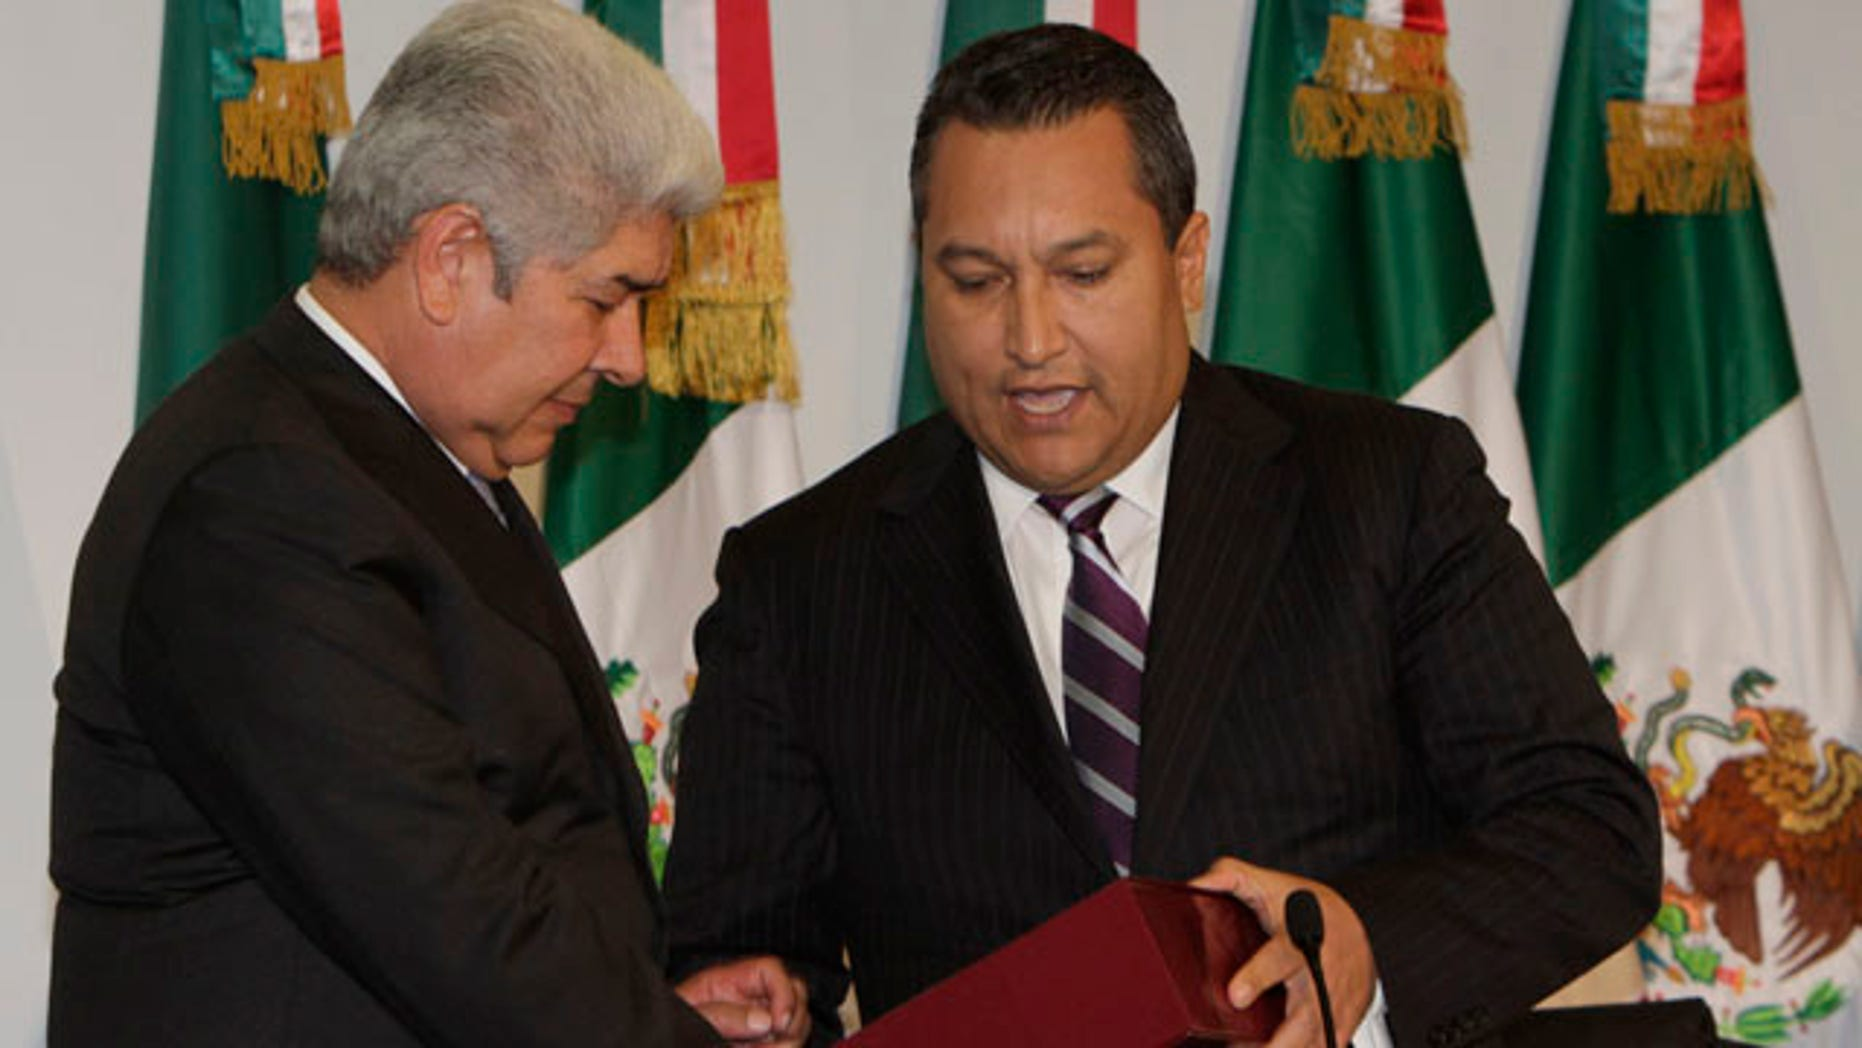 September 1: Mexico's Interior Secretary Jose Francisco Blake, hands the government's annual state of the nation report to Lower House President Francisco Ramirez Acuna at Congress in Mexico City. (AP)